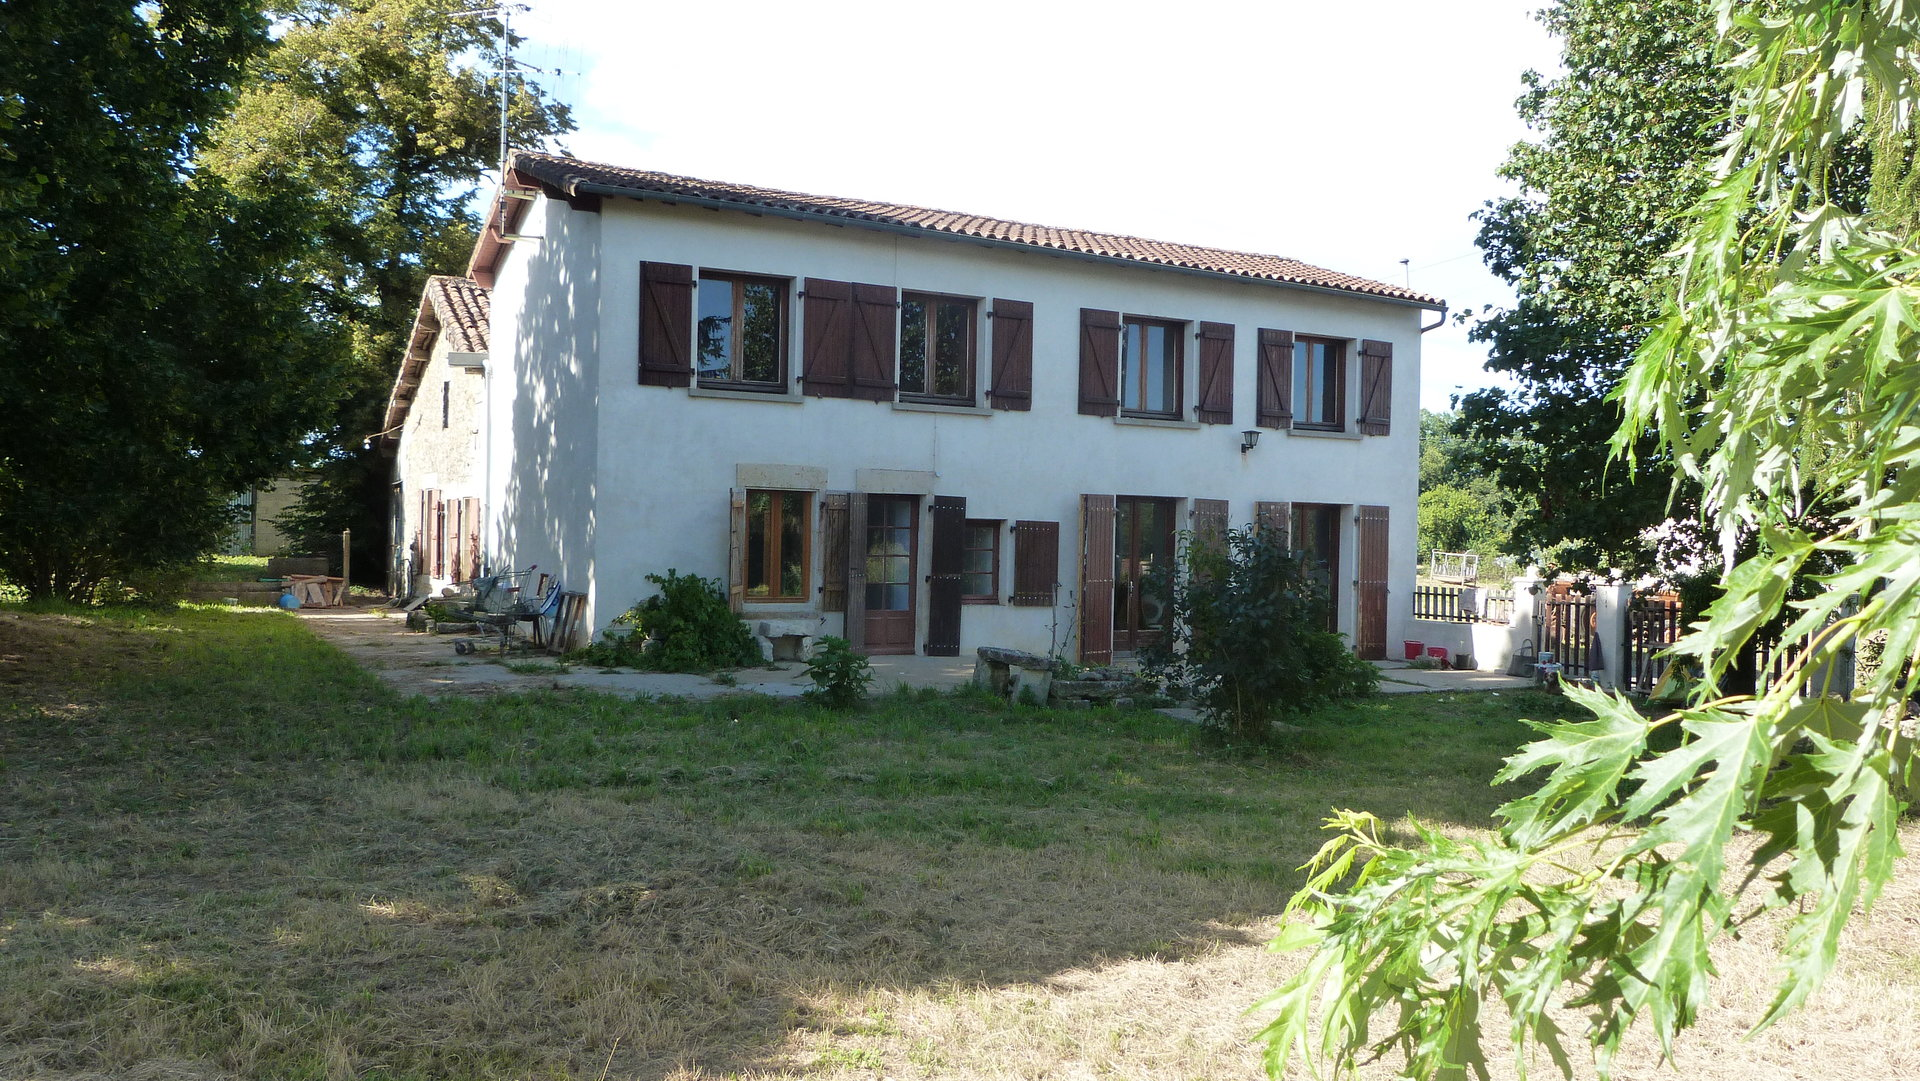 Farmhouse with 37,000 m² of adjoining land